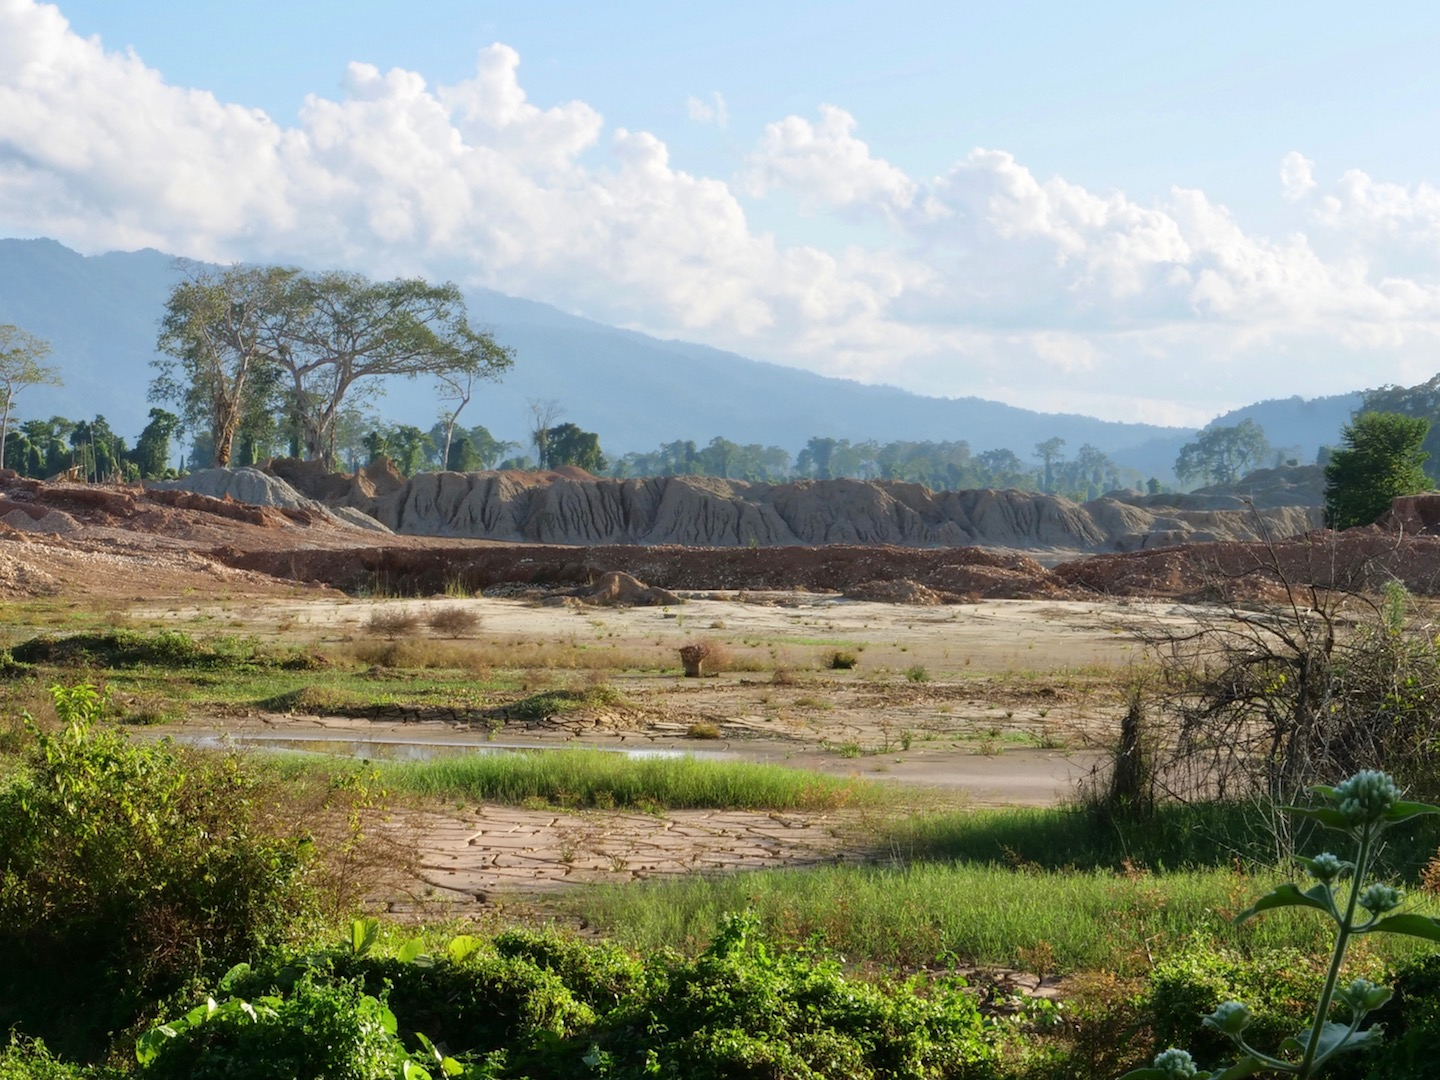 One of many mining fields that lay just beyond the main road hugging the western edge of Indawgyi Lake.